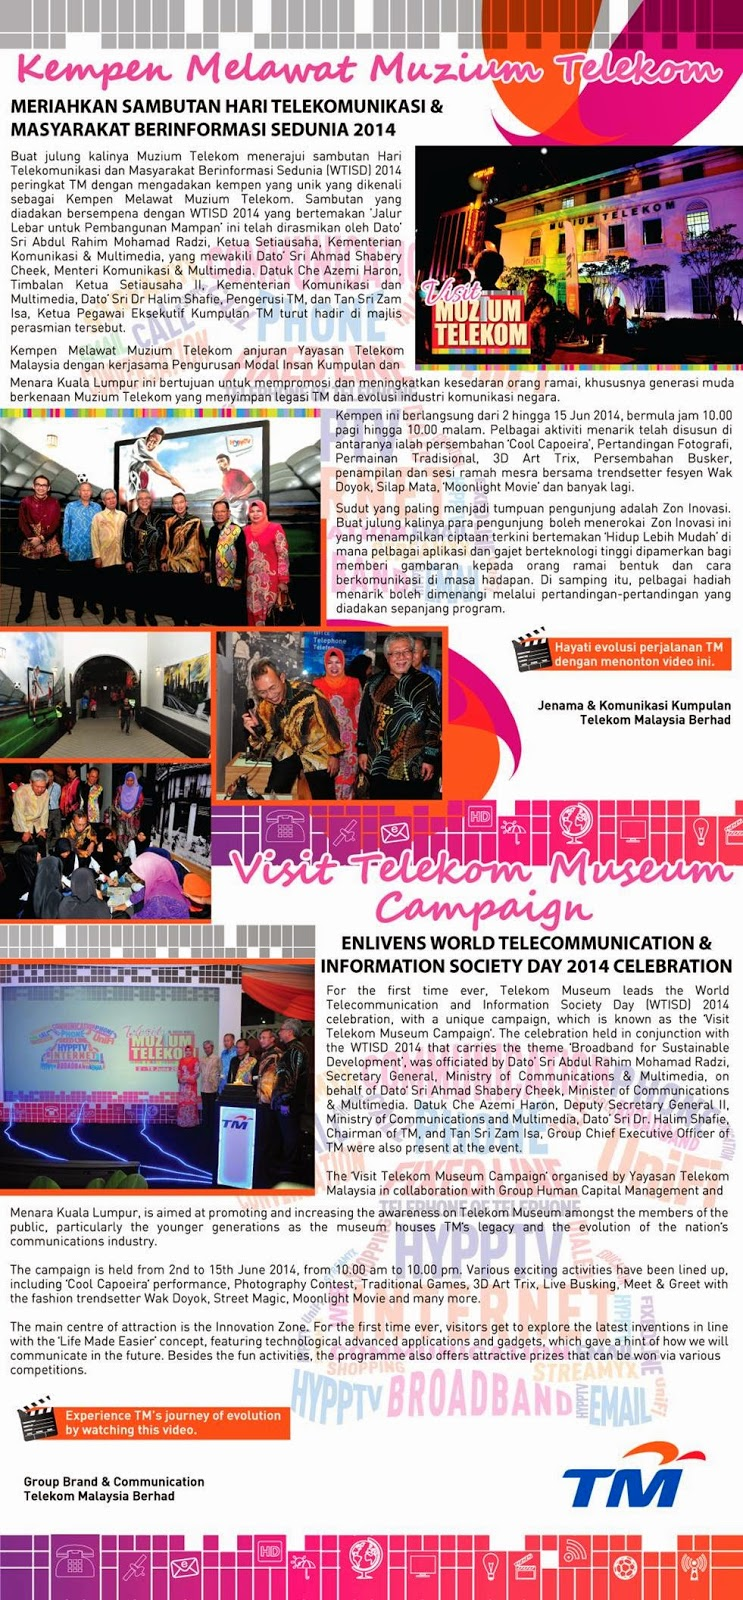 Visit Telekom Museum Campaign in Conjunction of World Telecommunication and Information Society Day 2014 Celebration